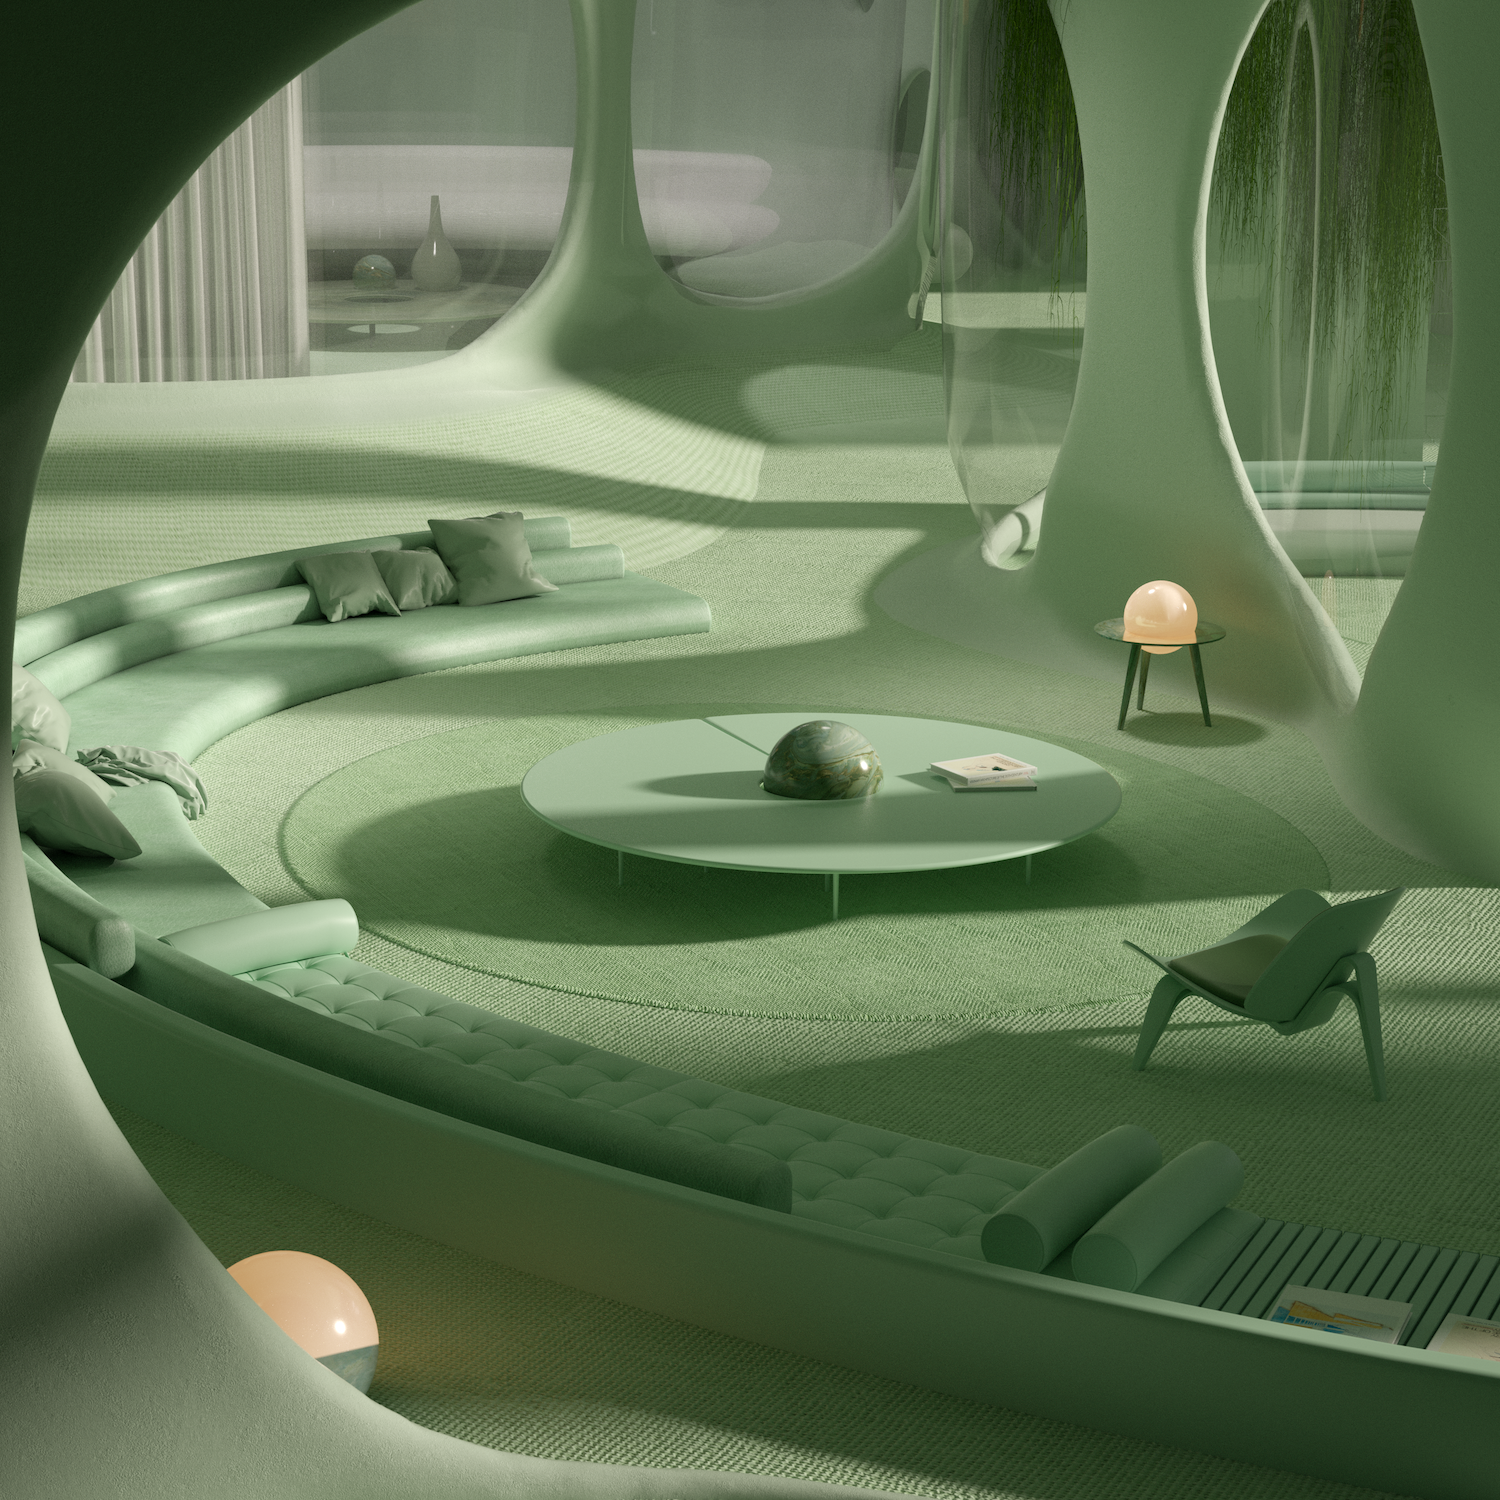 Dreamscapes Artificial Architecture Imagined Interior Design In Digital Art Gestalten